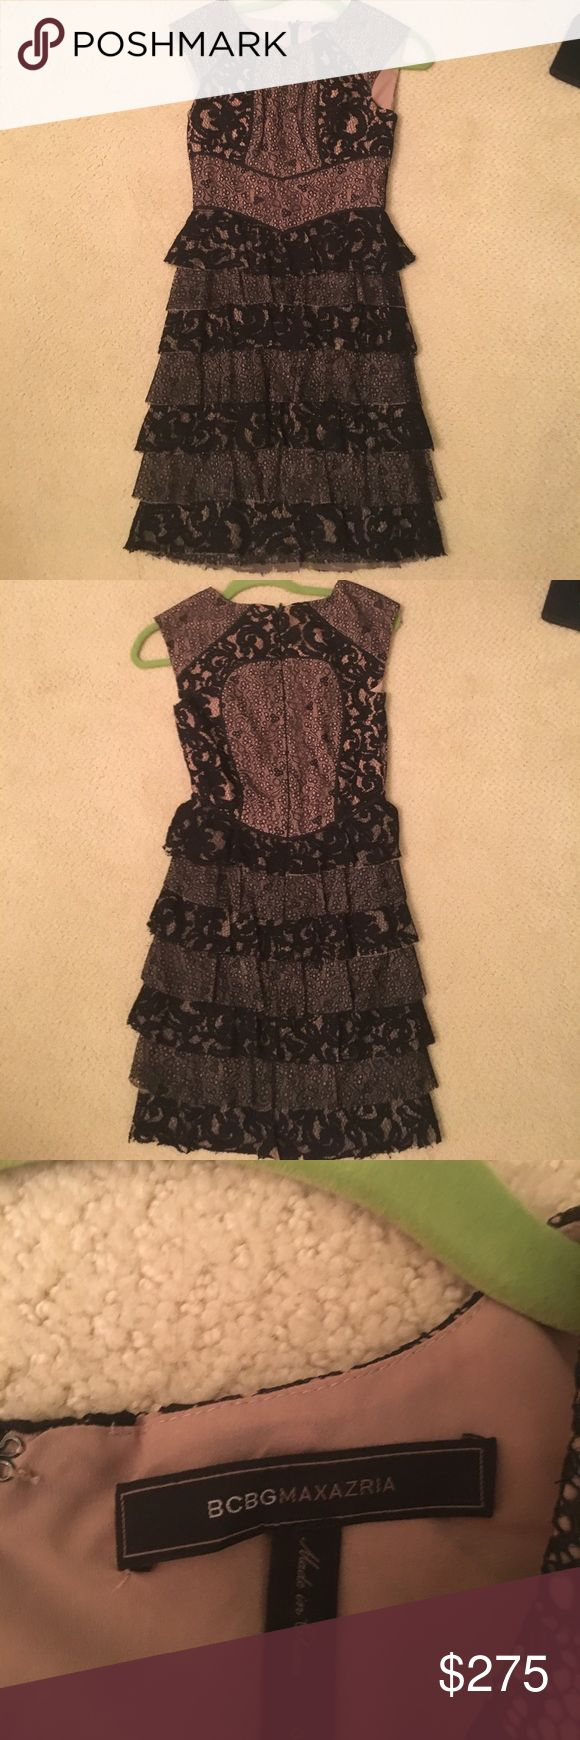 BCBG dress black dress Lace dress worn for my sophomore year homecoming and hasn't been worn since. Taking best offer! Don't worry about listing price just taking best offer!! BCBGMaxAzria Dresses